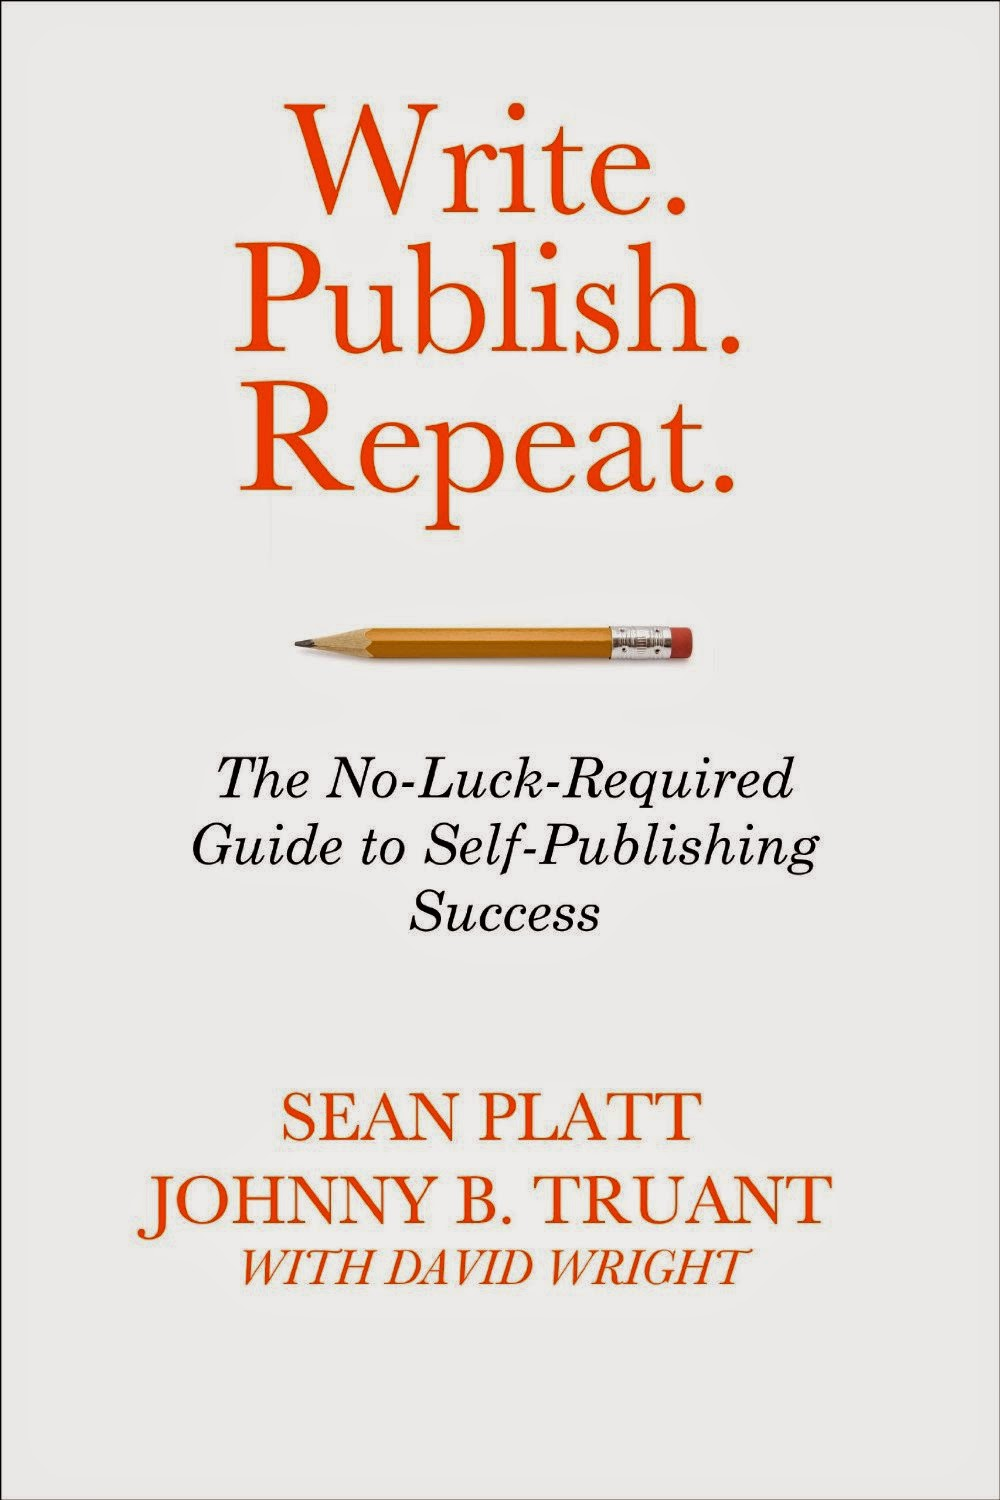 Write. Publish. Repeat. – Sean Platt, Johnny B. Truant, with David Wright